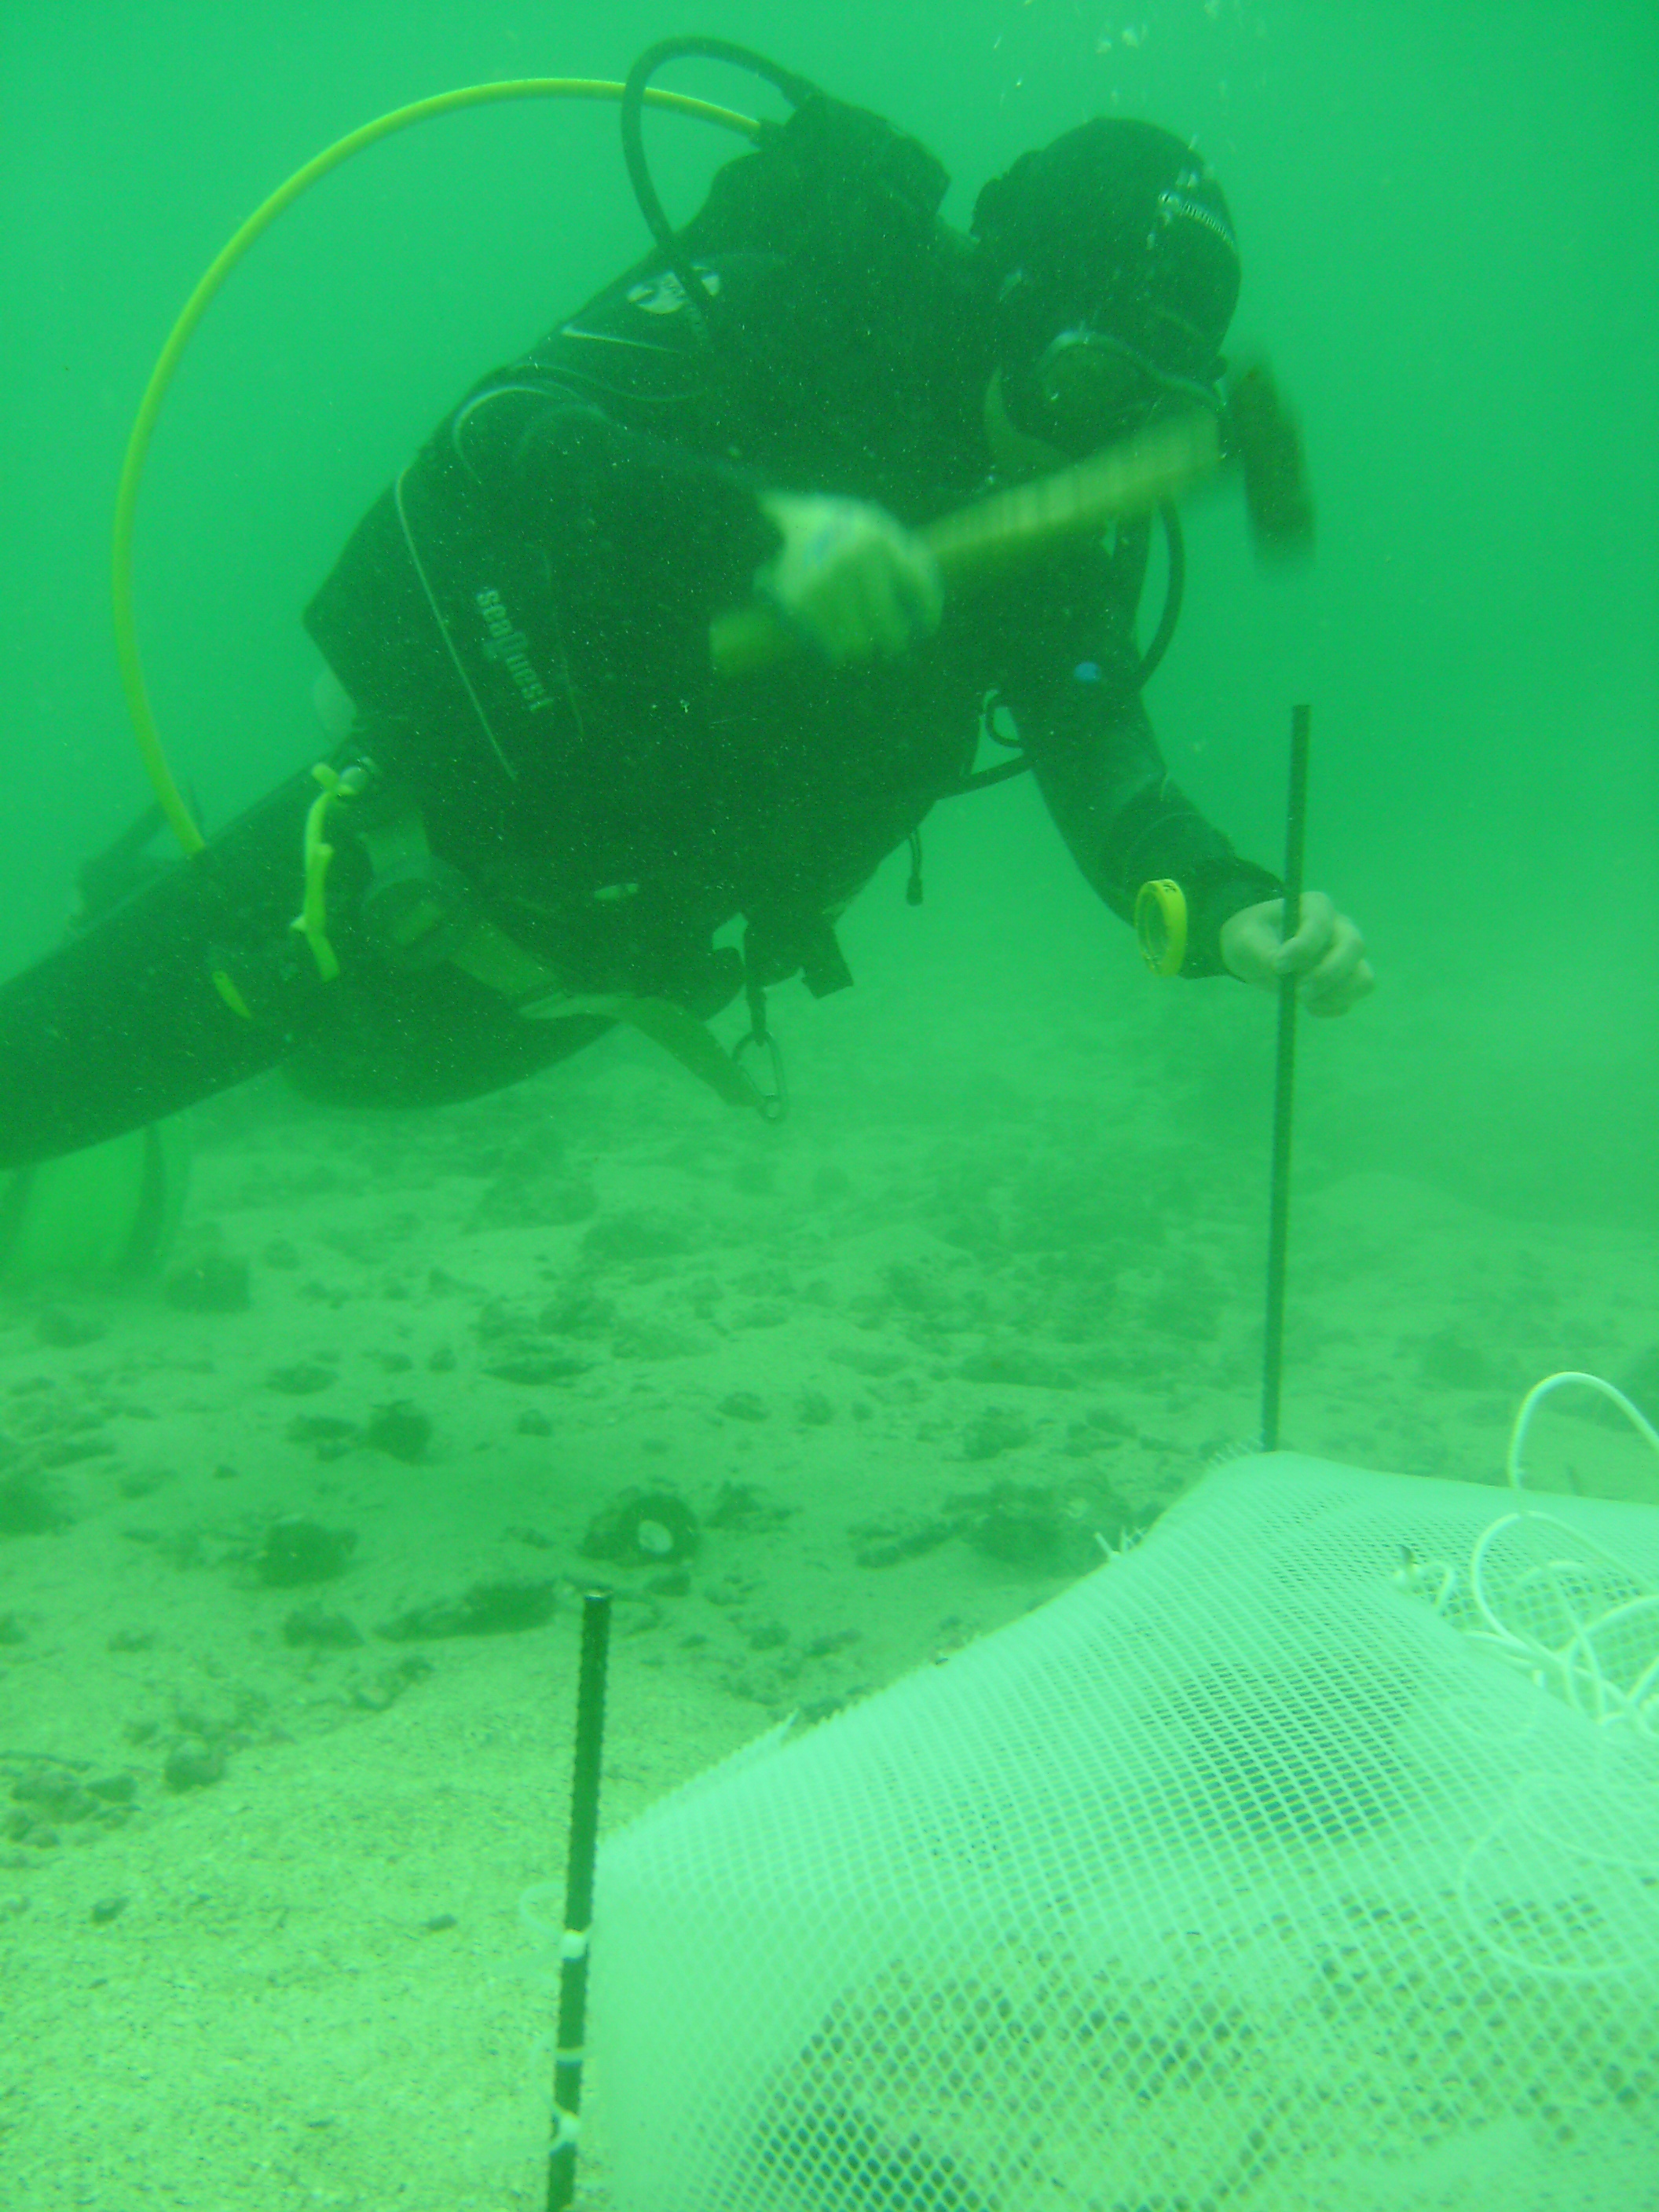 setting up underwater cages